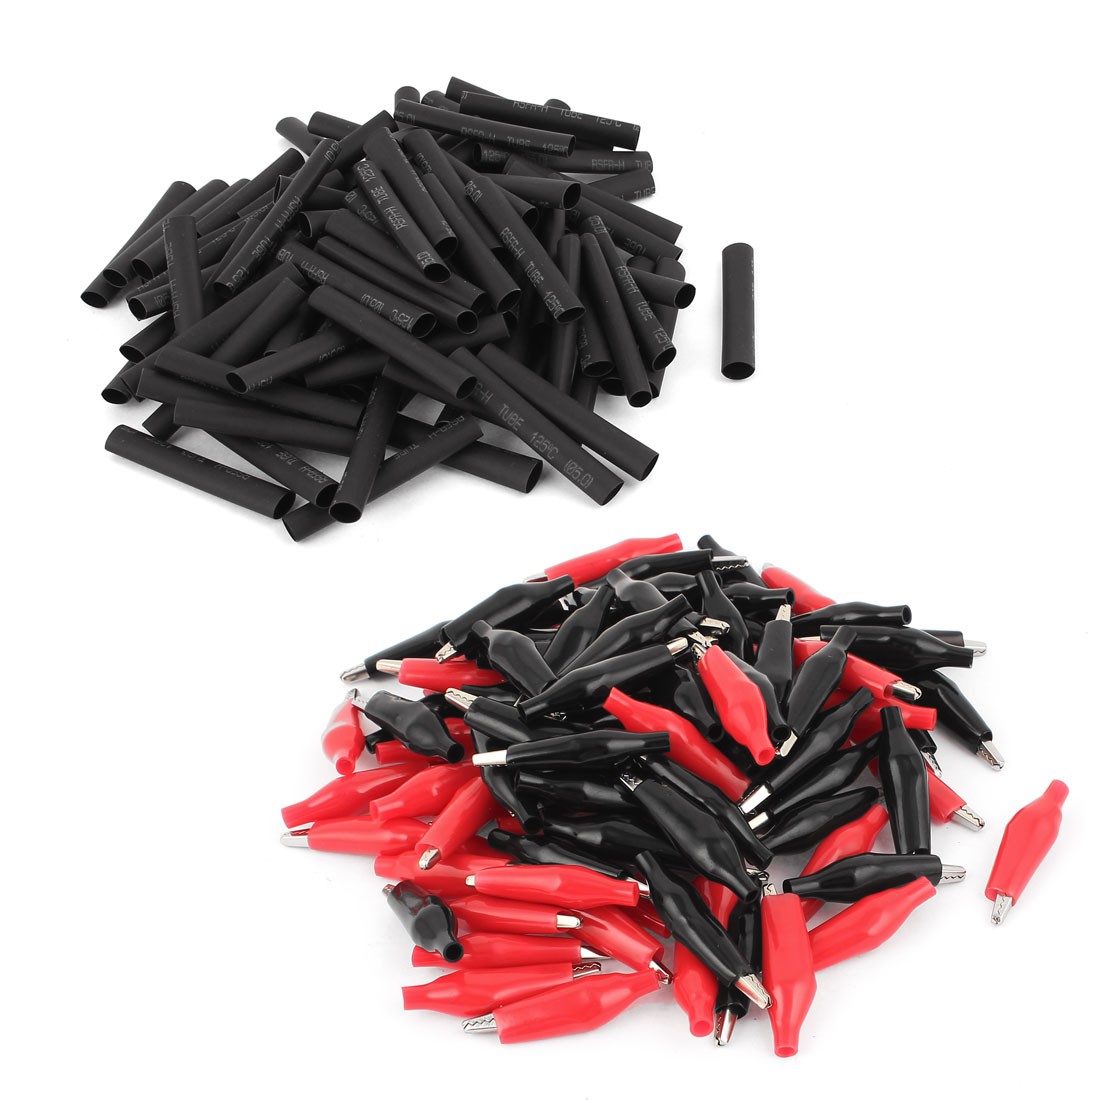 100Pcs Red Black Soft Boot Coated Alligator Test Clip w Heat Shrinkable Tube